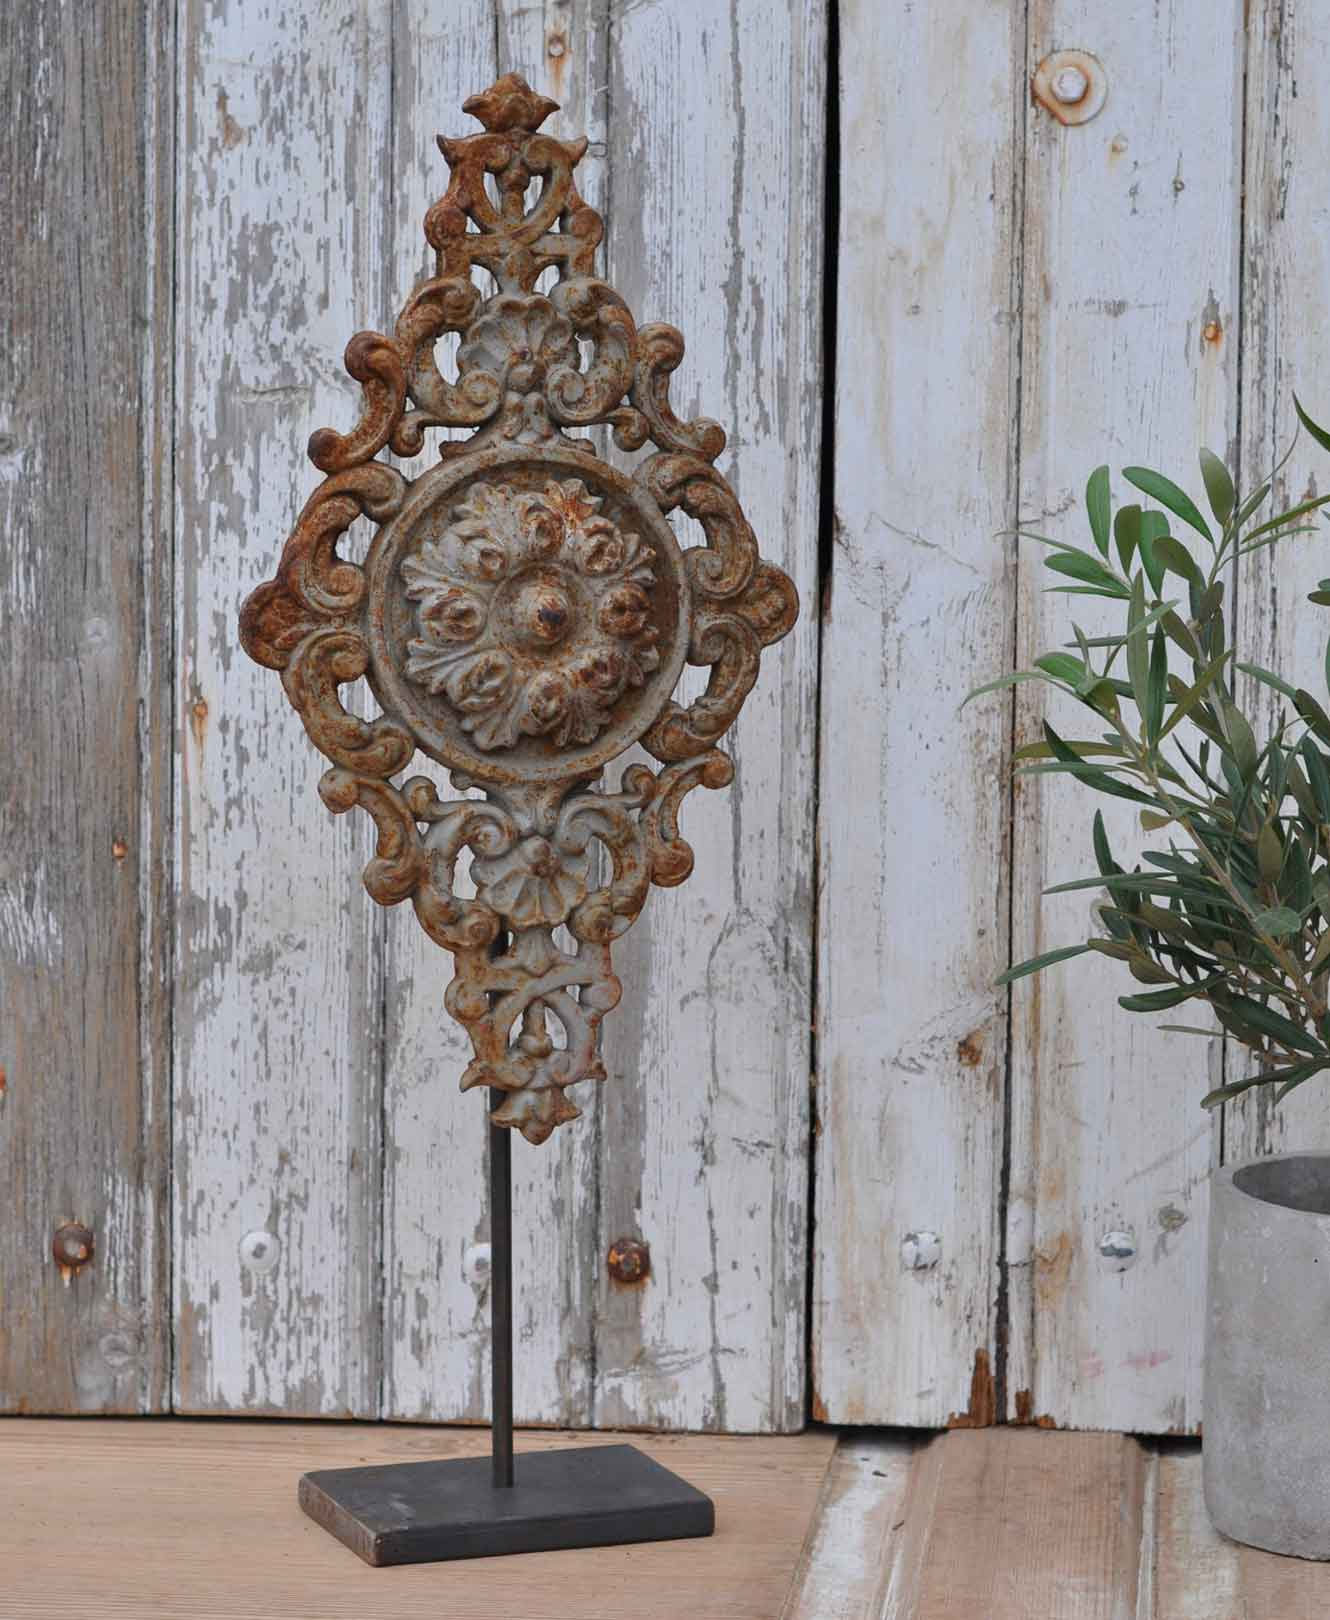 Antique Belgian Architectural Salvage Cast Iron Artwork